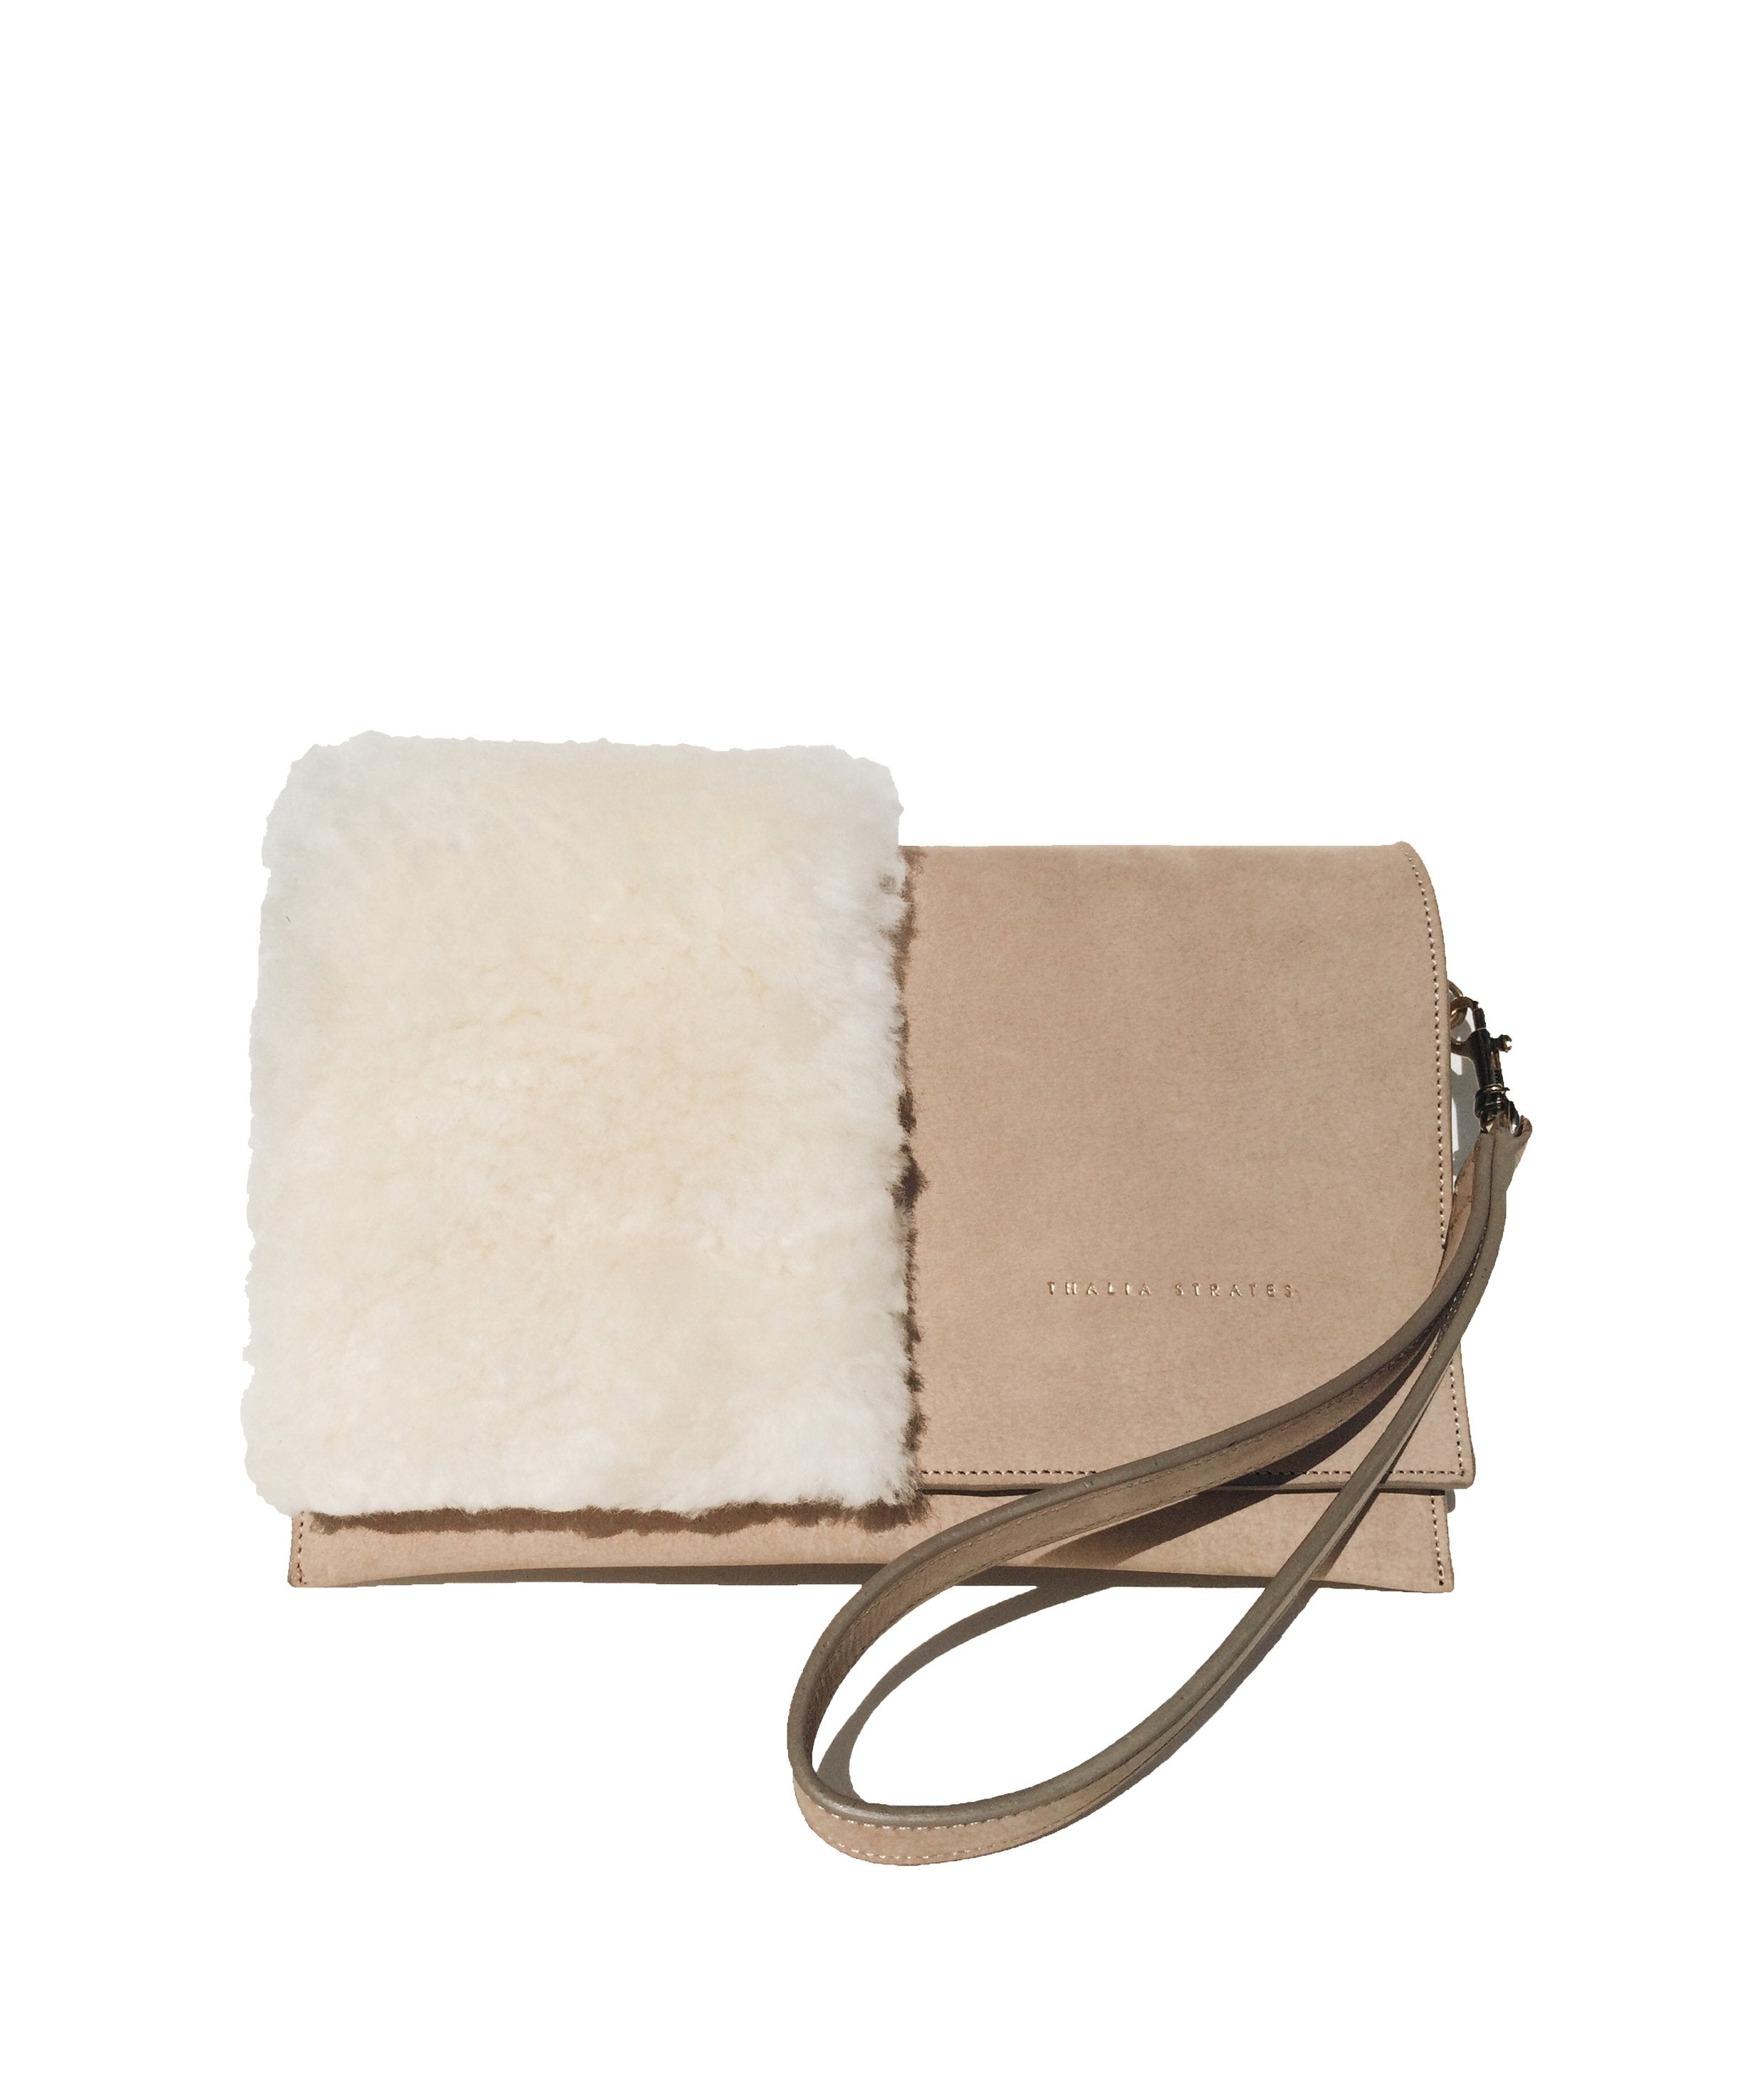 Mali leather bag with shearling details - sand